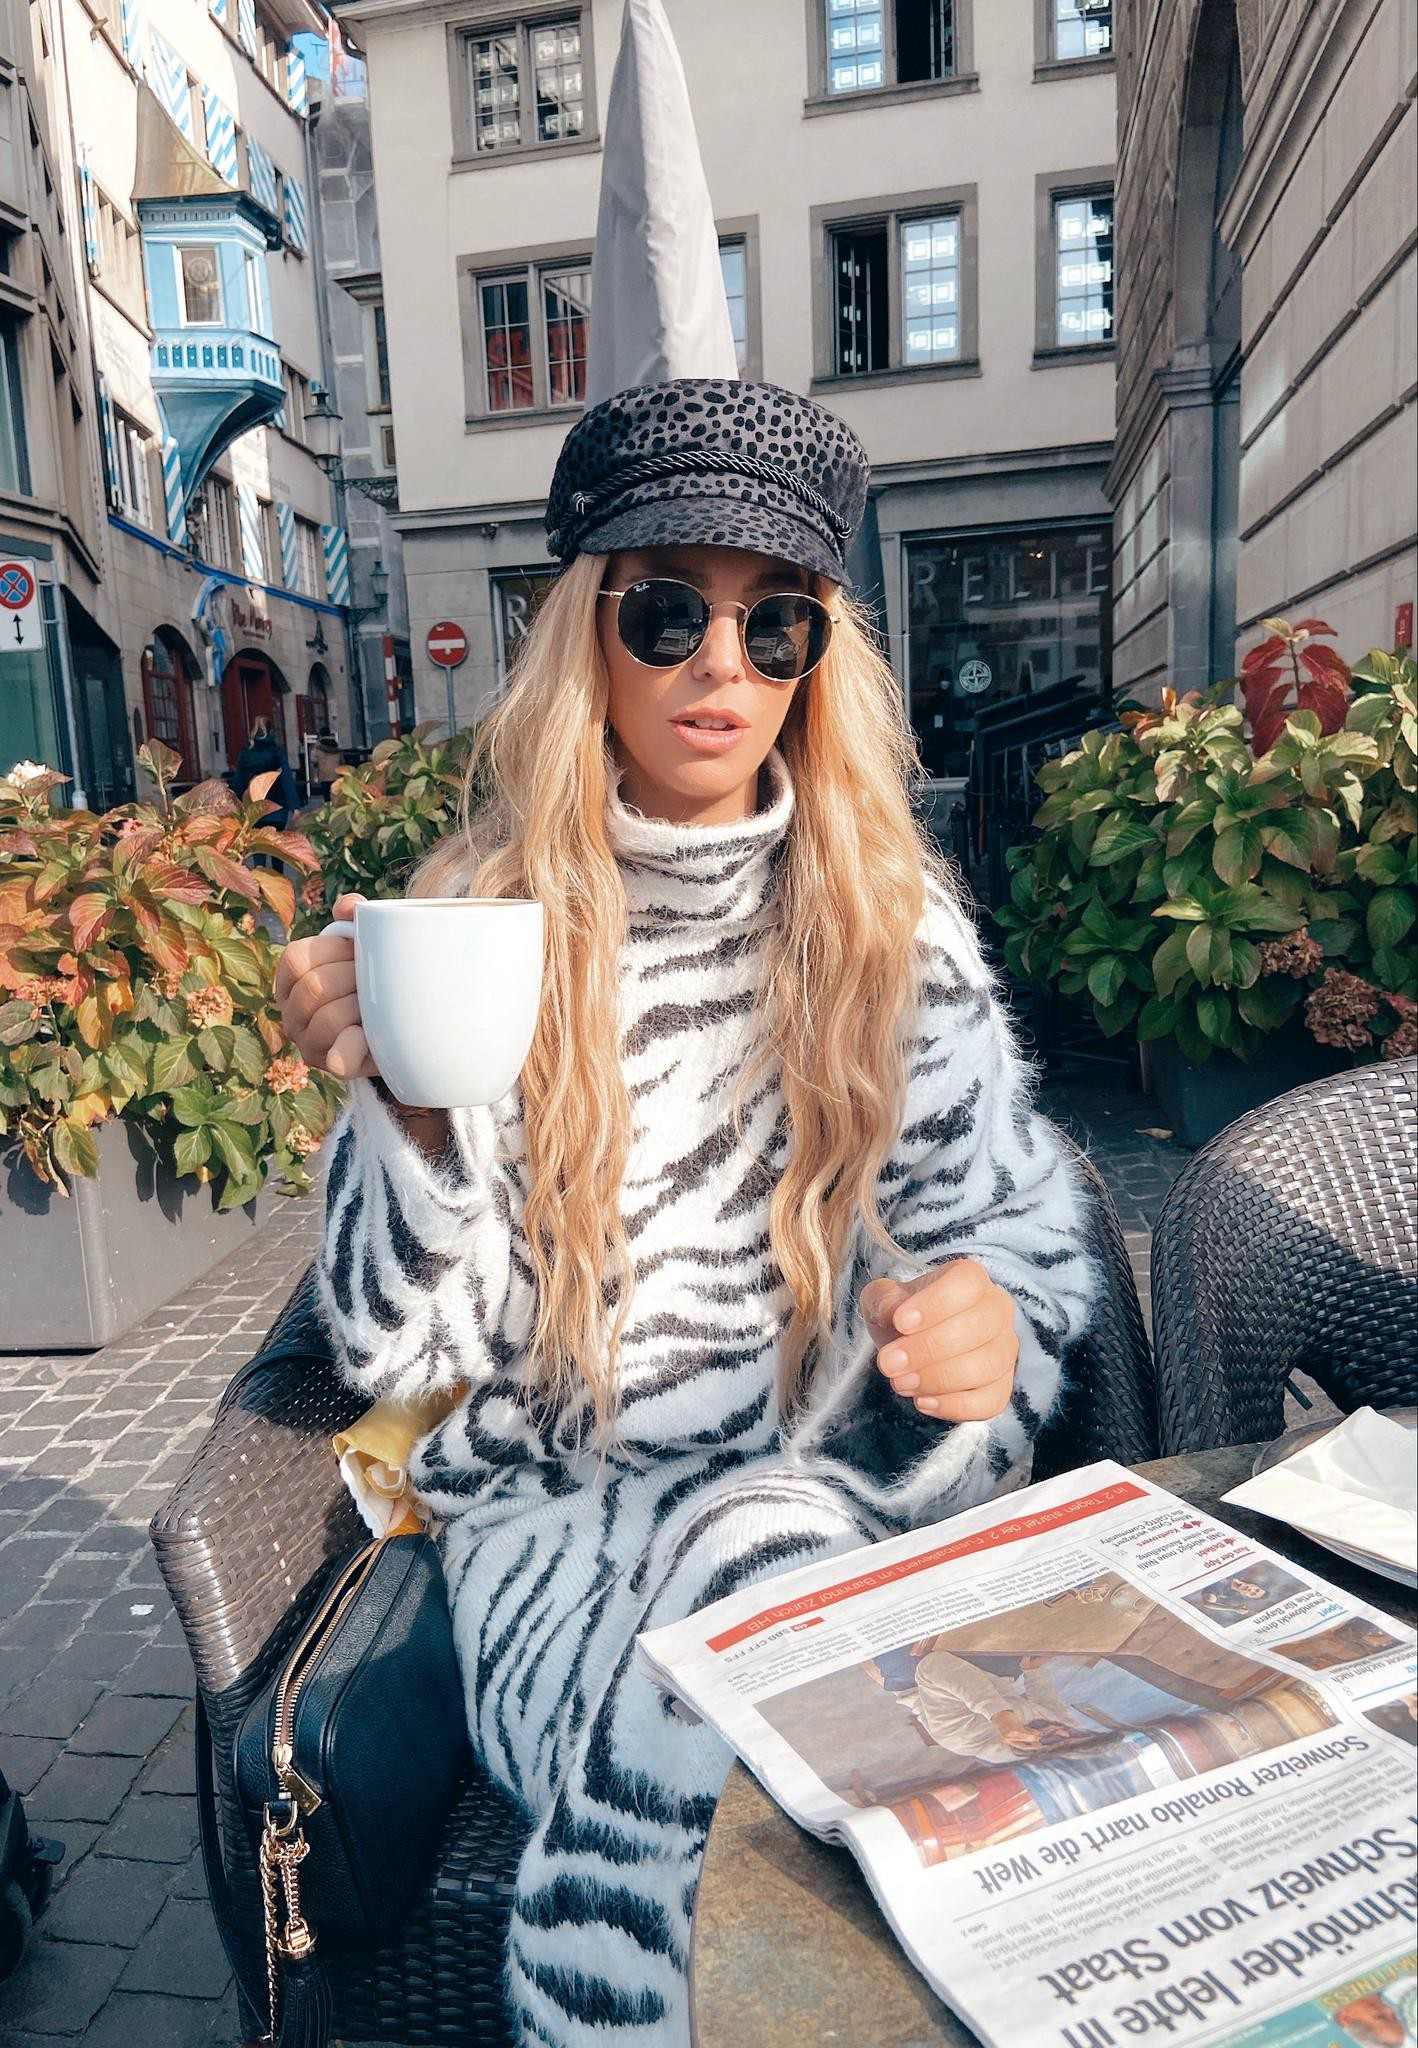 a woman sipping coffee in switzerland wearing animal print dress